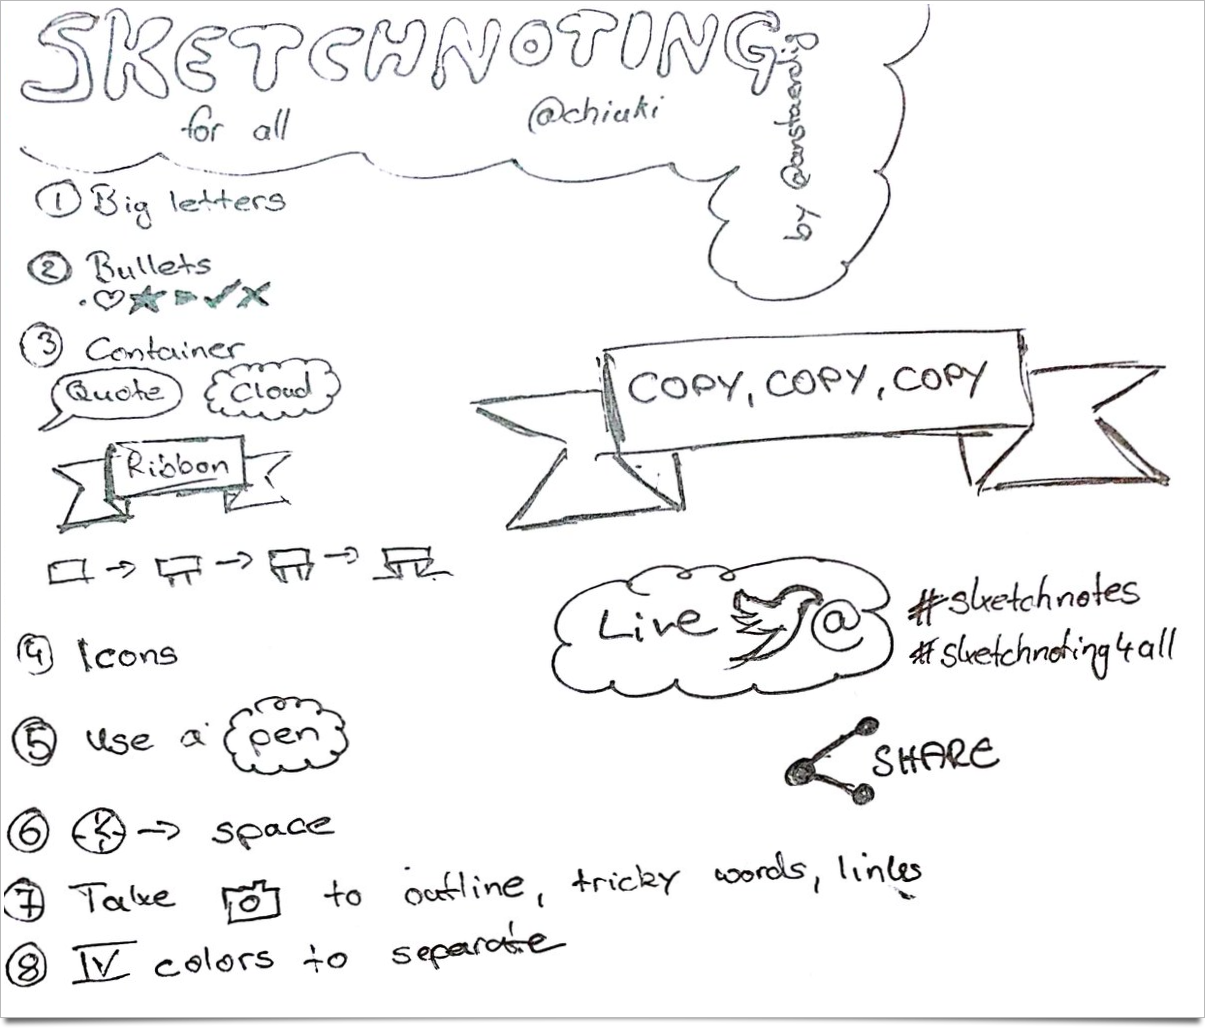 Barcamp sketchnoting